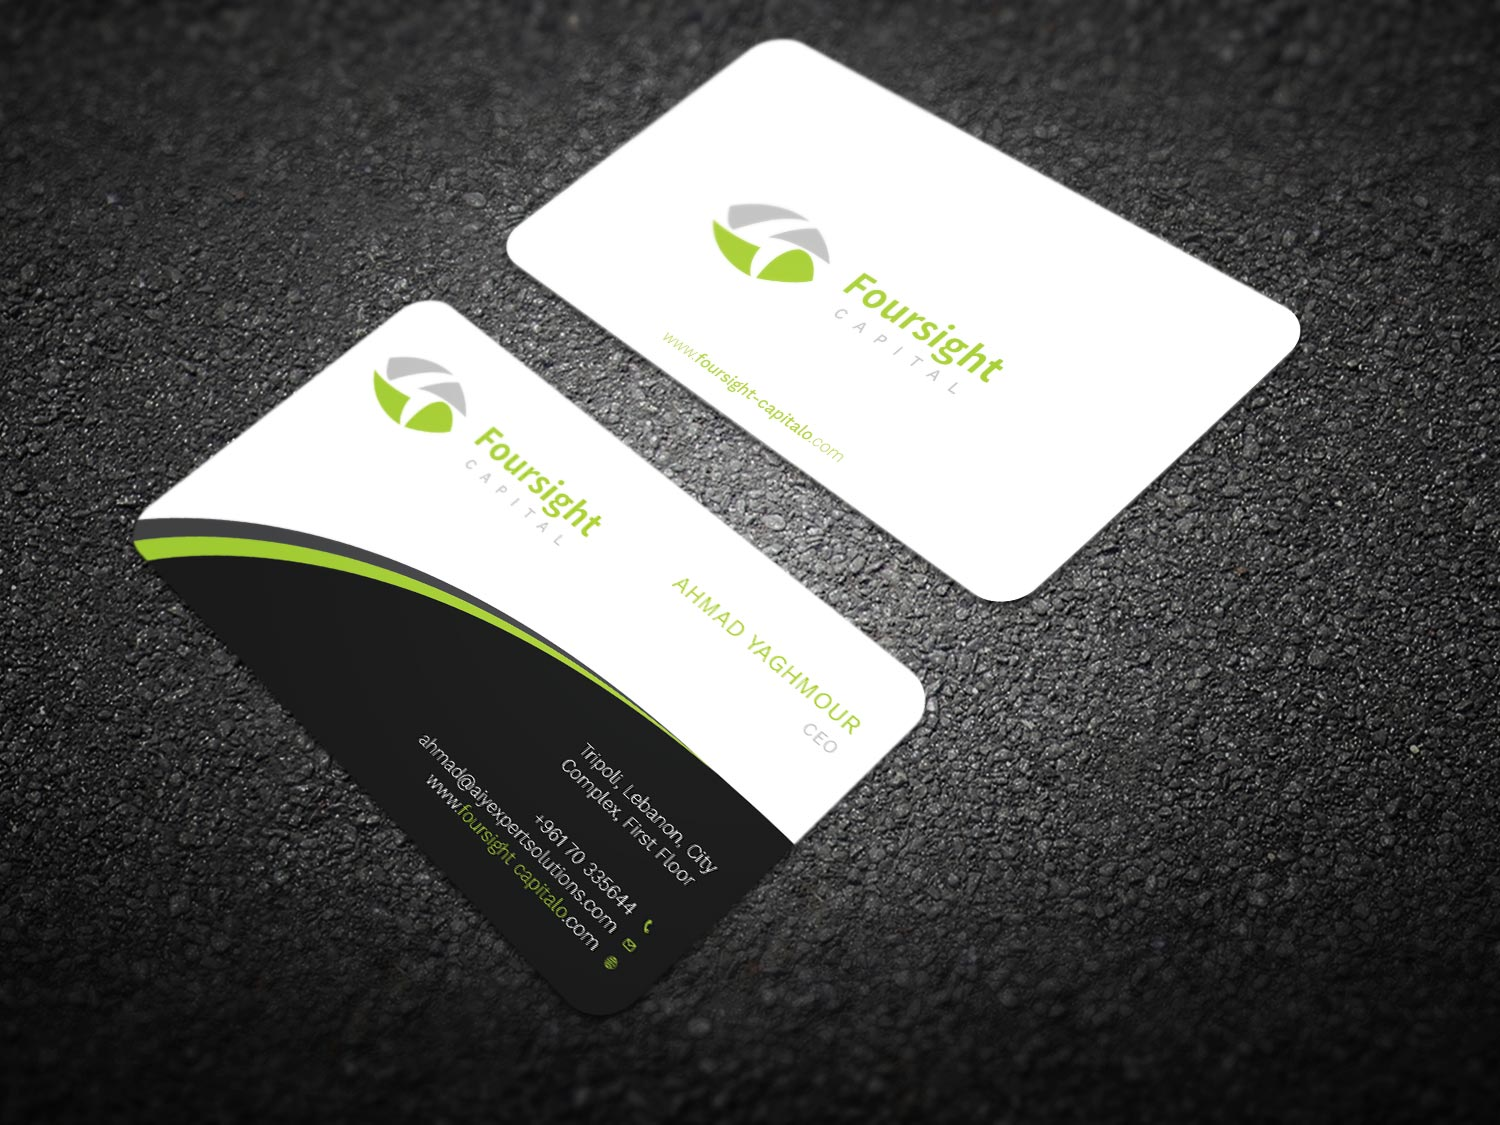 Upmarket modern financial service business card design for a business card design by fxpro for this project design 18311313 reheart Images